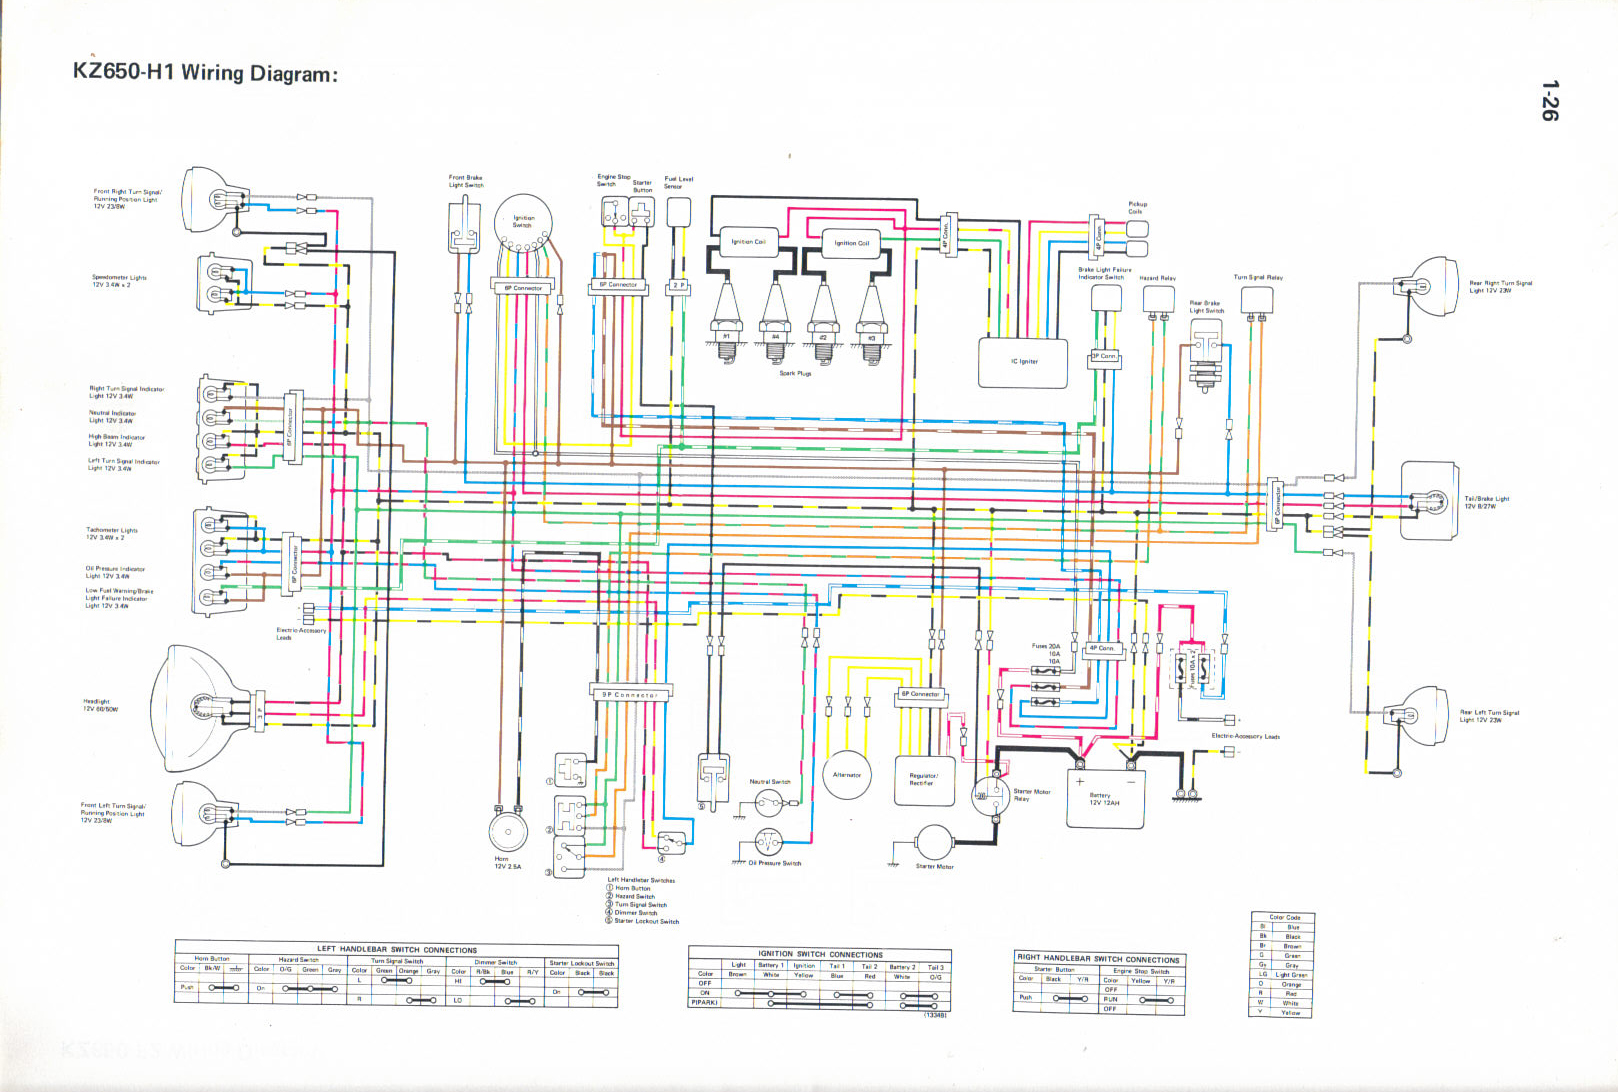 KZ650 H1 kawasaki h1 wiring diagram kawasaki wiring diagrams instruction ex500 wiring diagram at alyssarenee.co